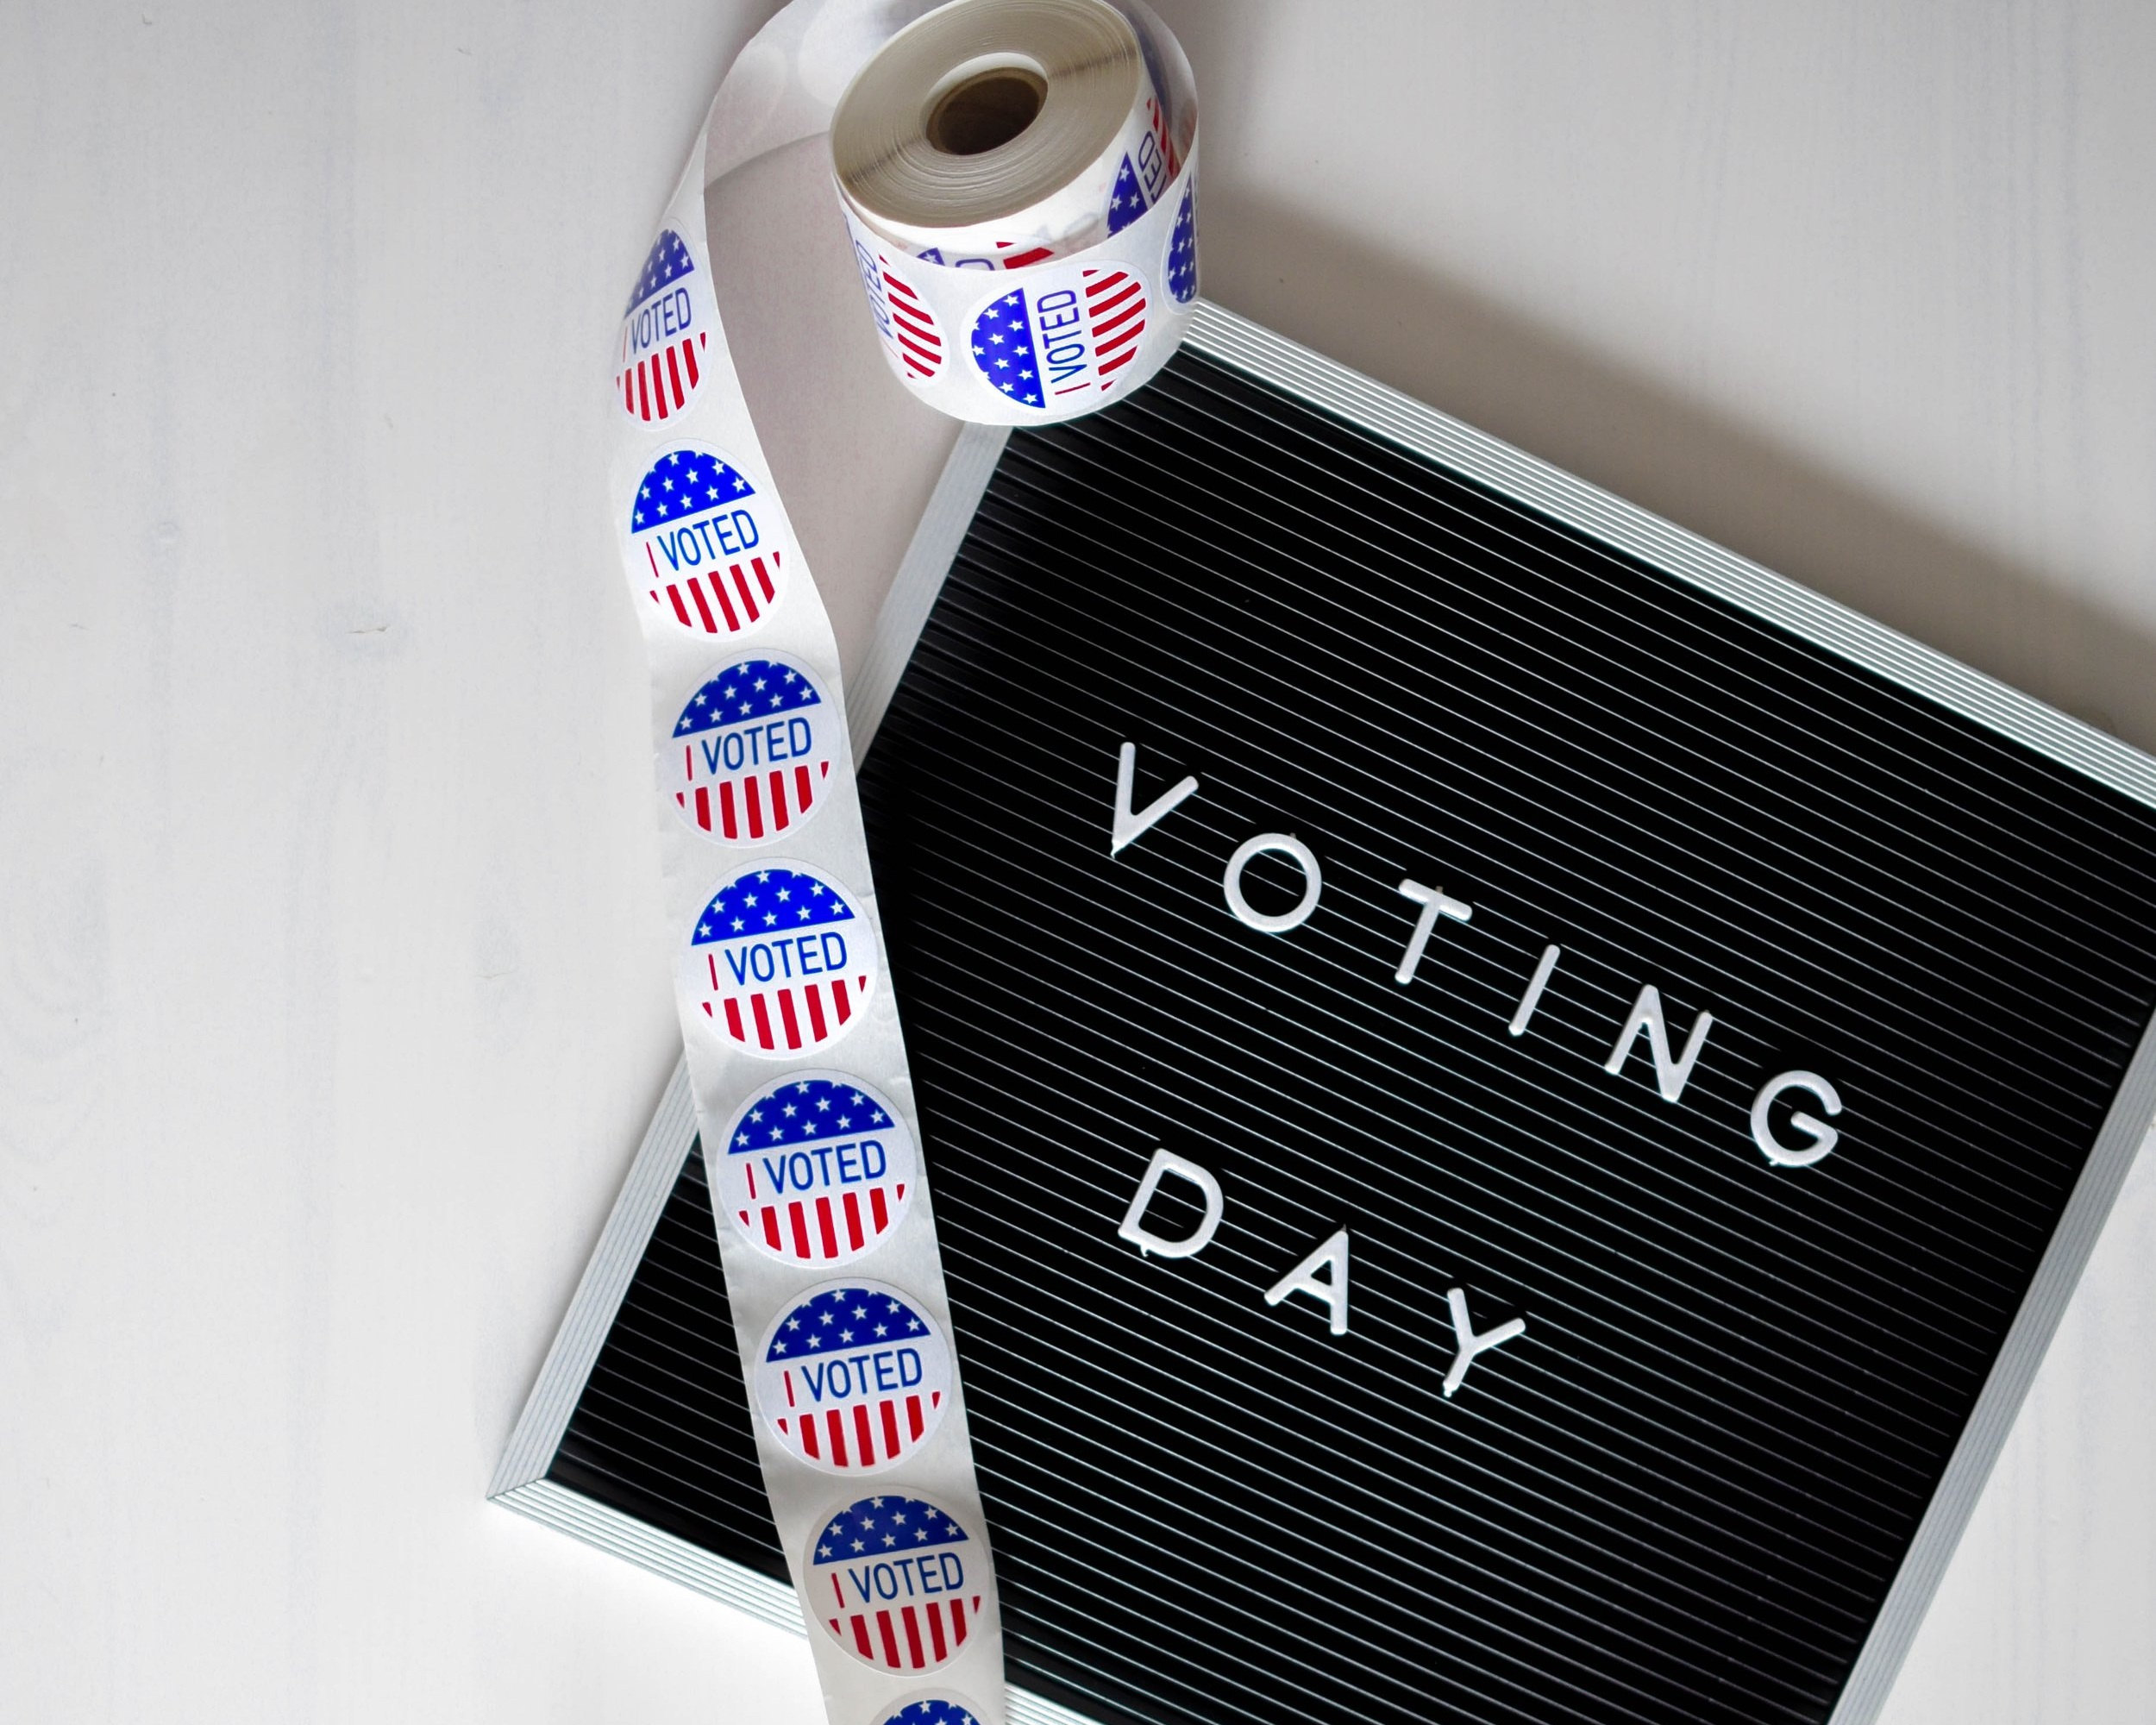 election day: November 5, 2019 - How to register, where to vote, and how to get an absentee ballot